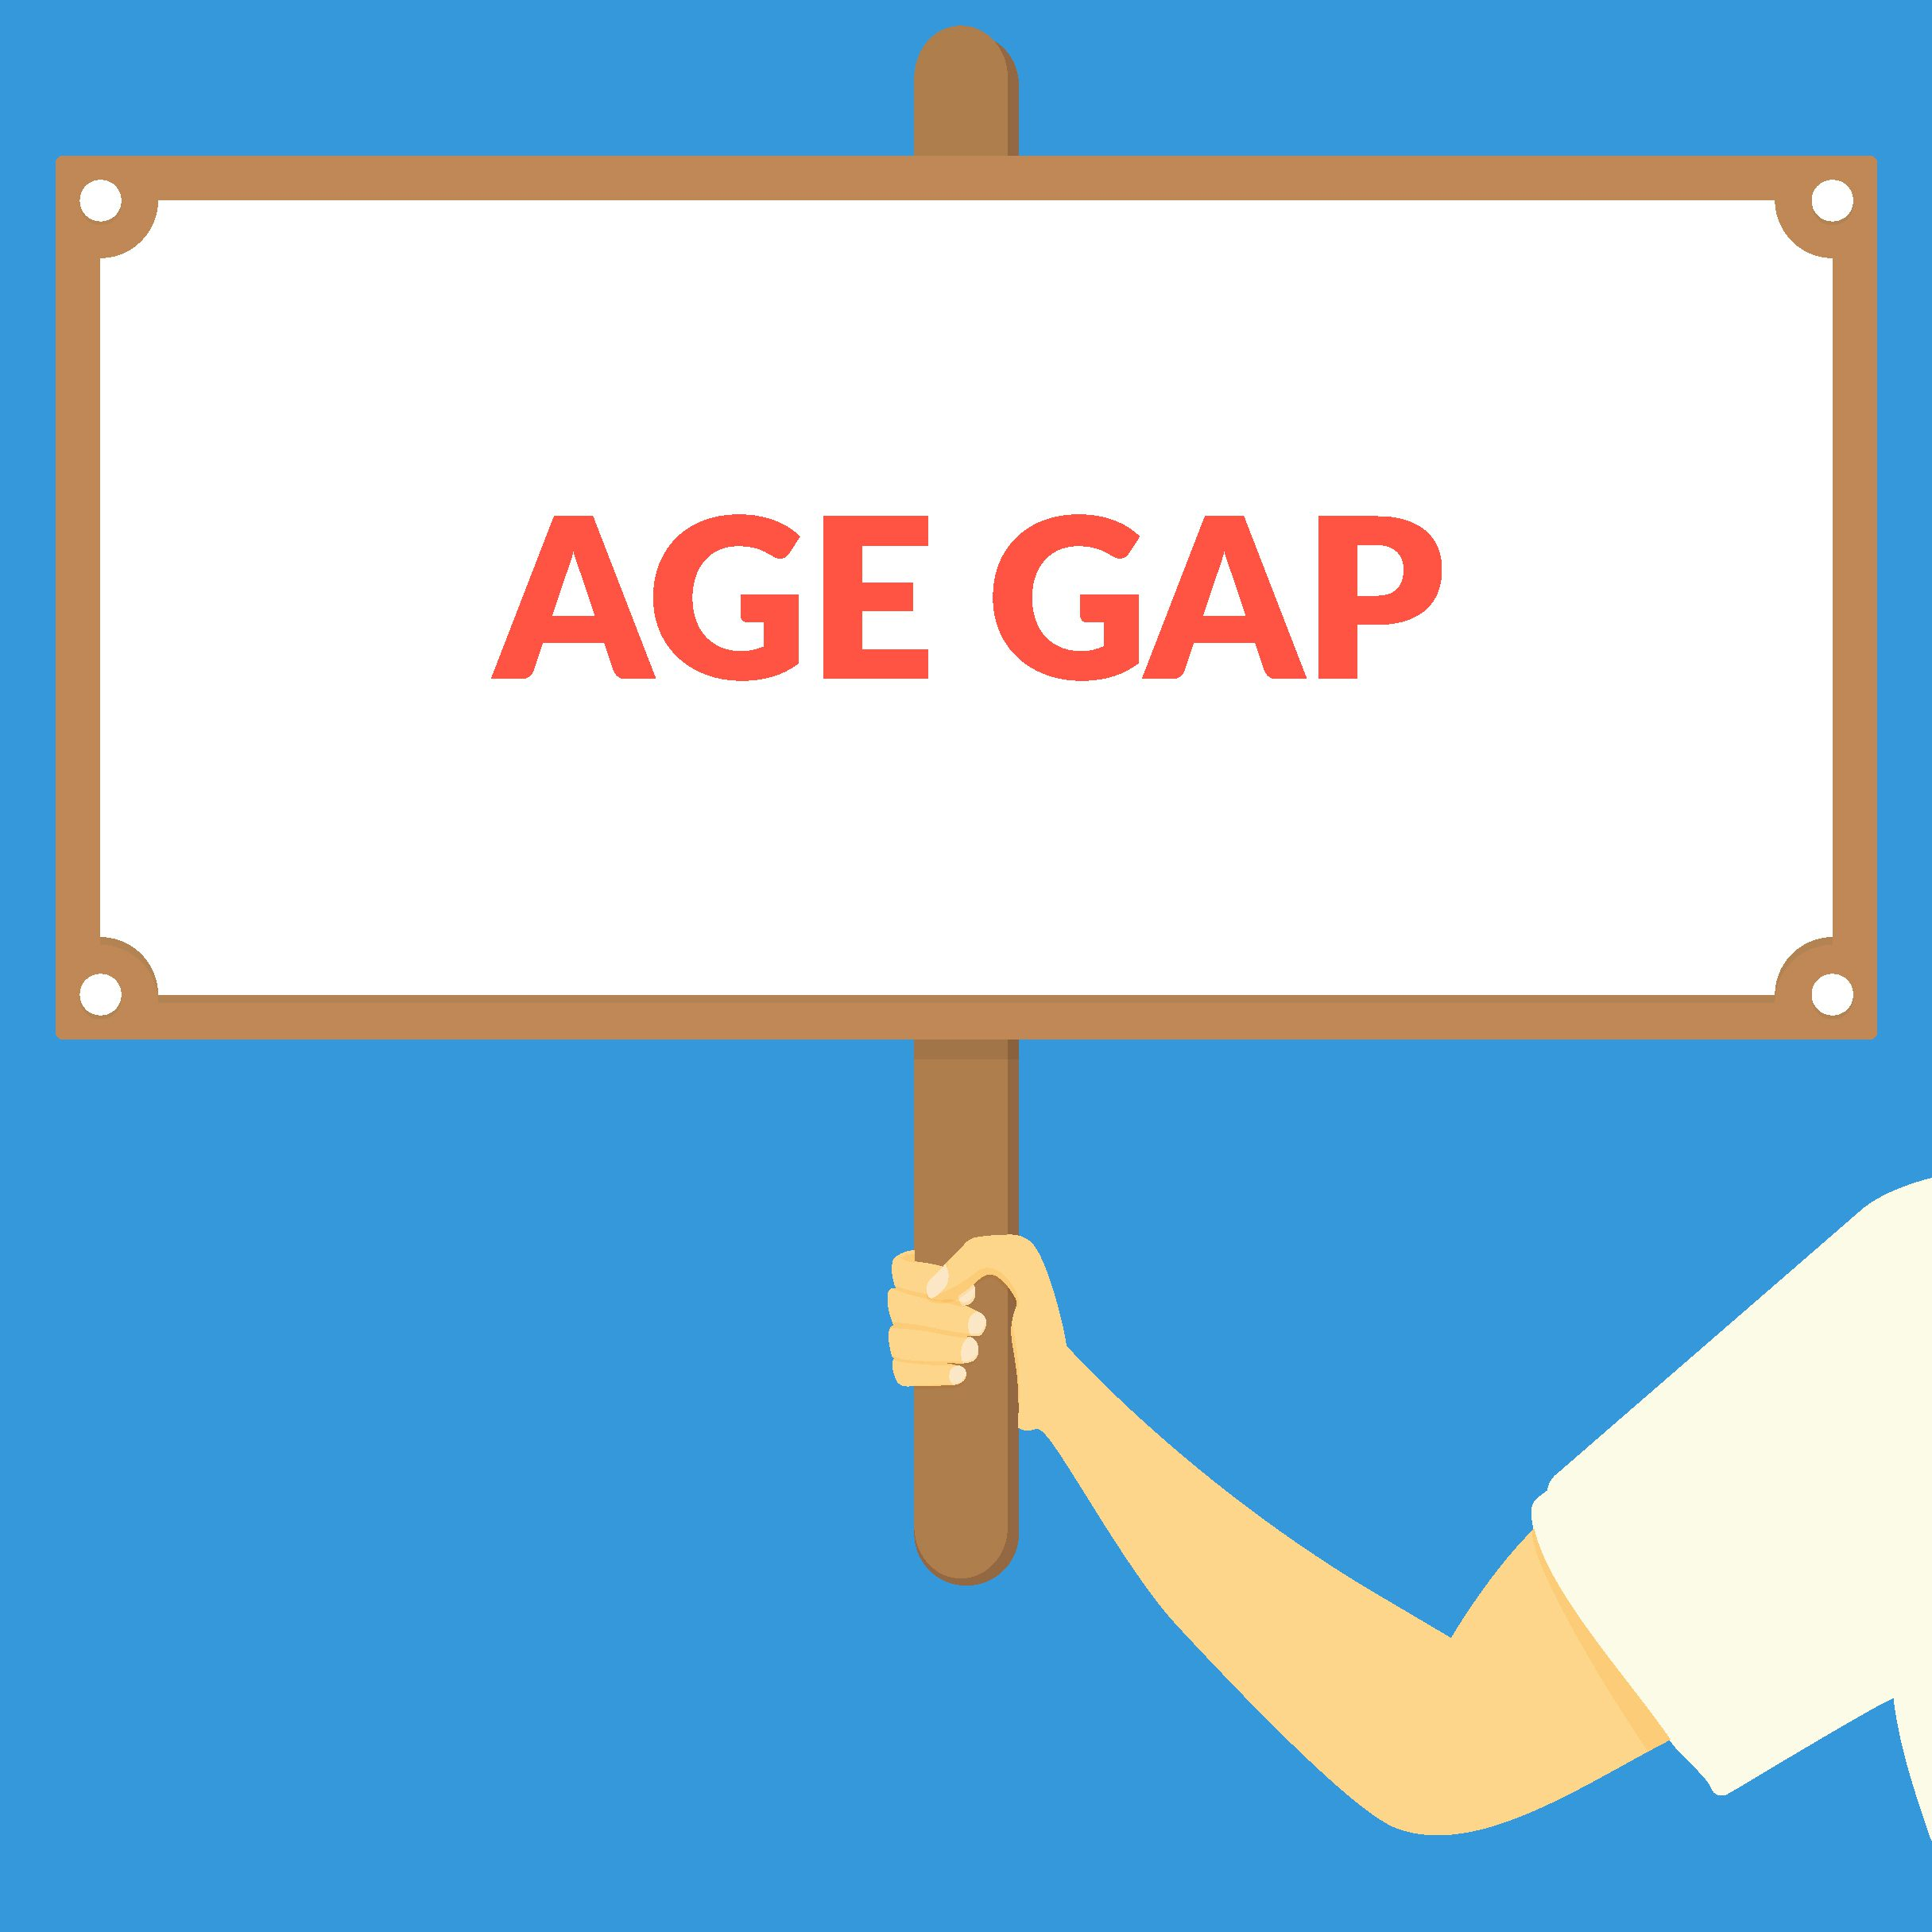 Dating age gap